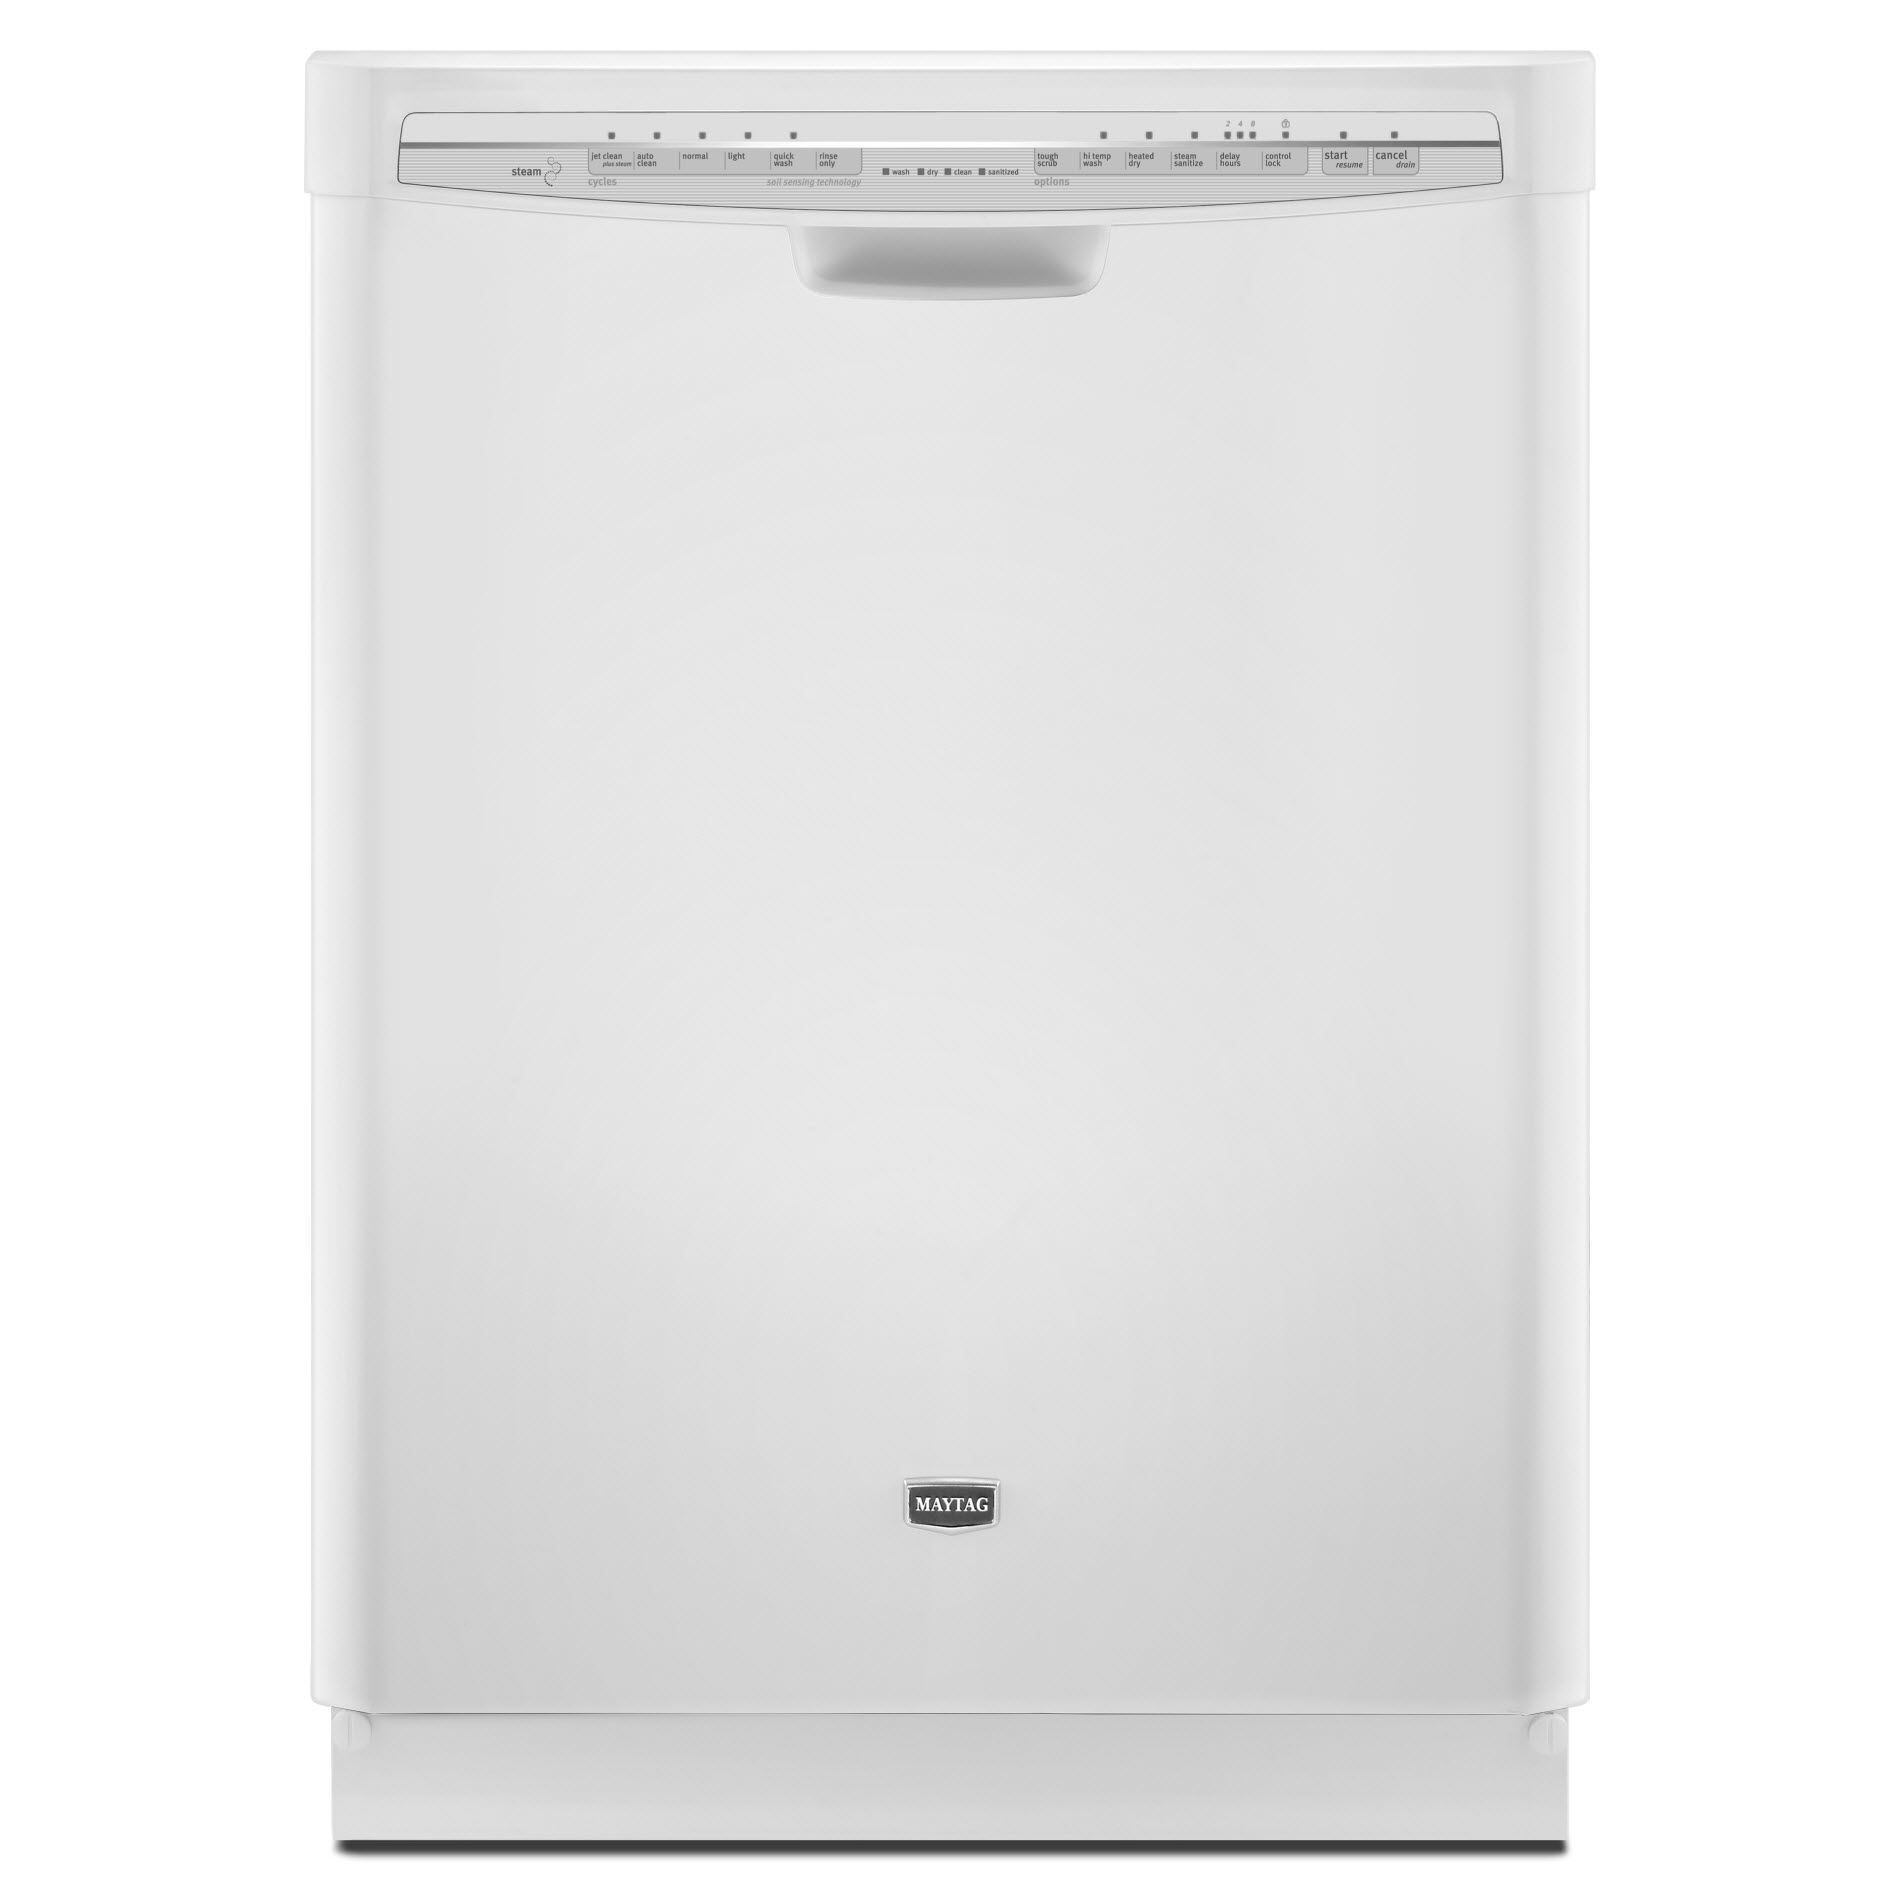 24-Jetclean-Plus-Dishwasher-w-Stainless-Steel-Tub-White